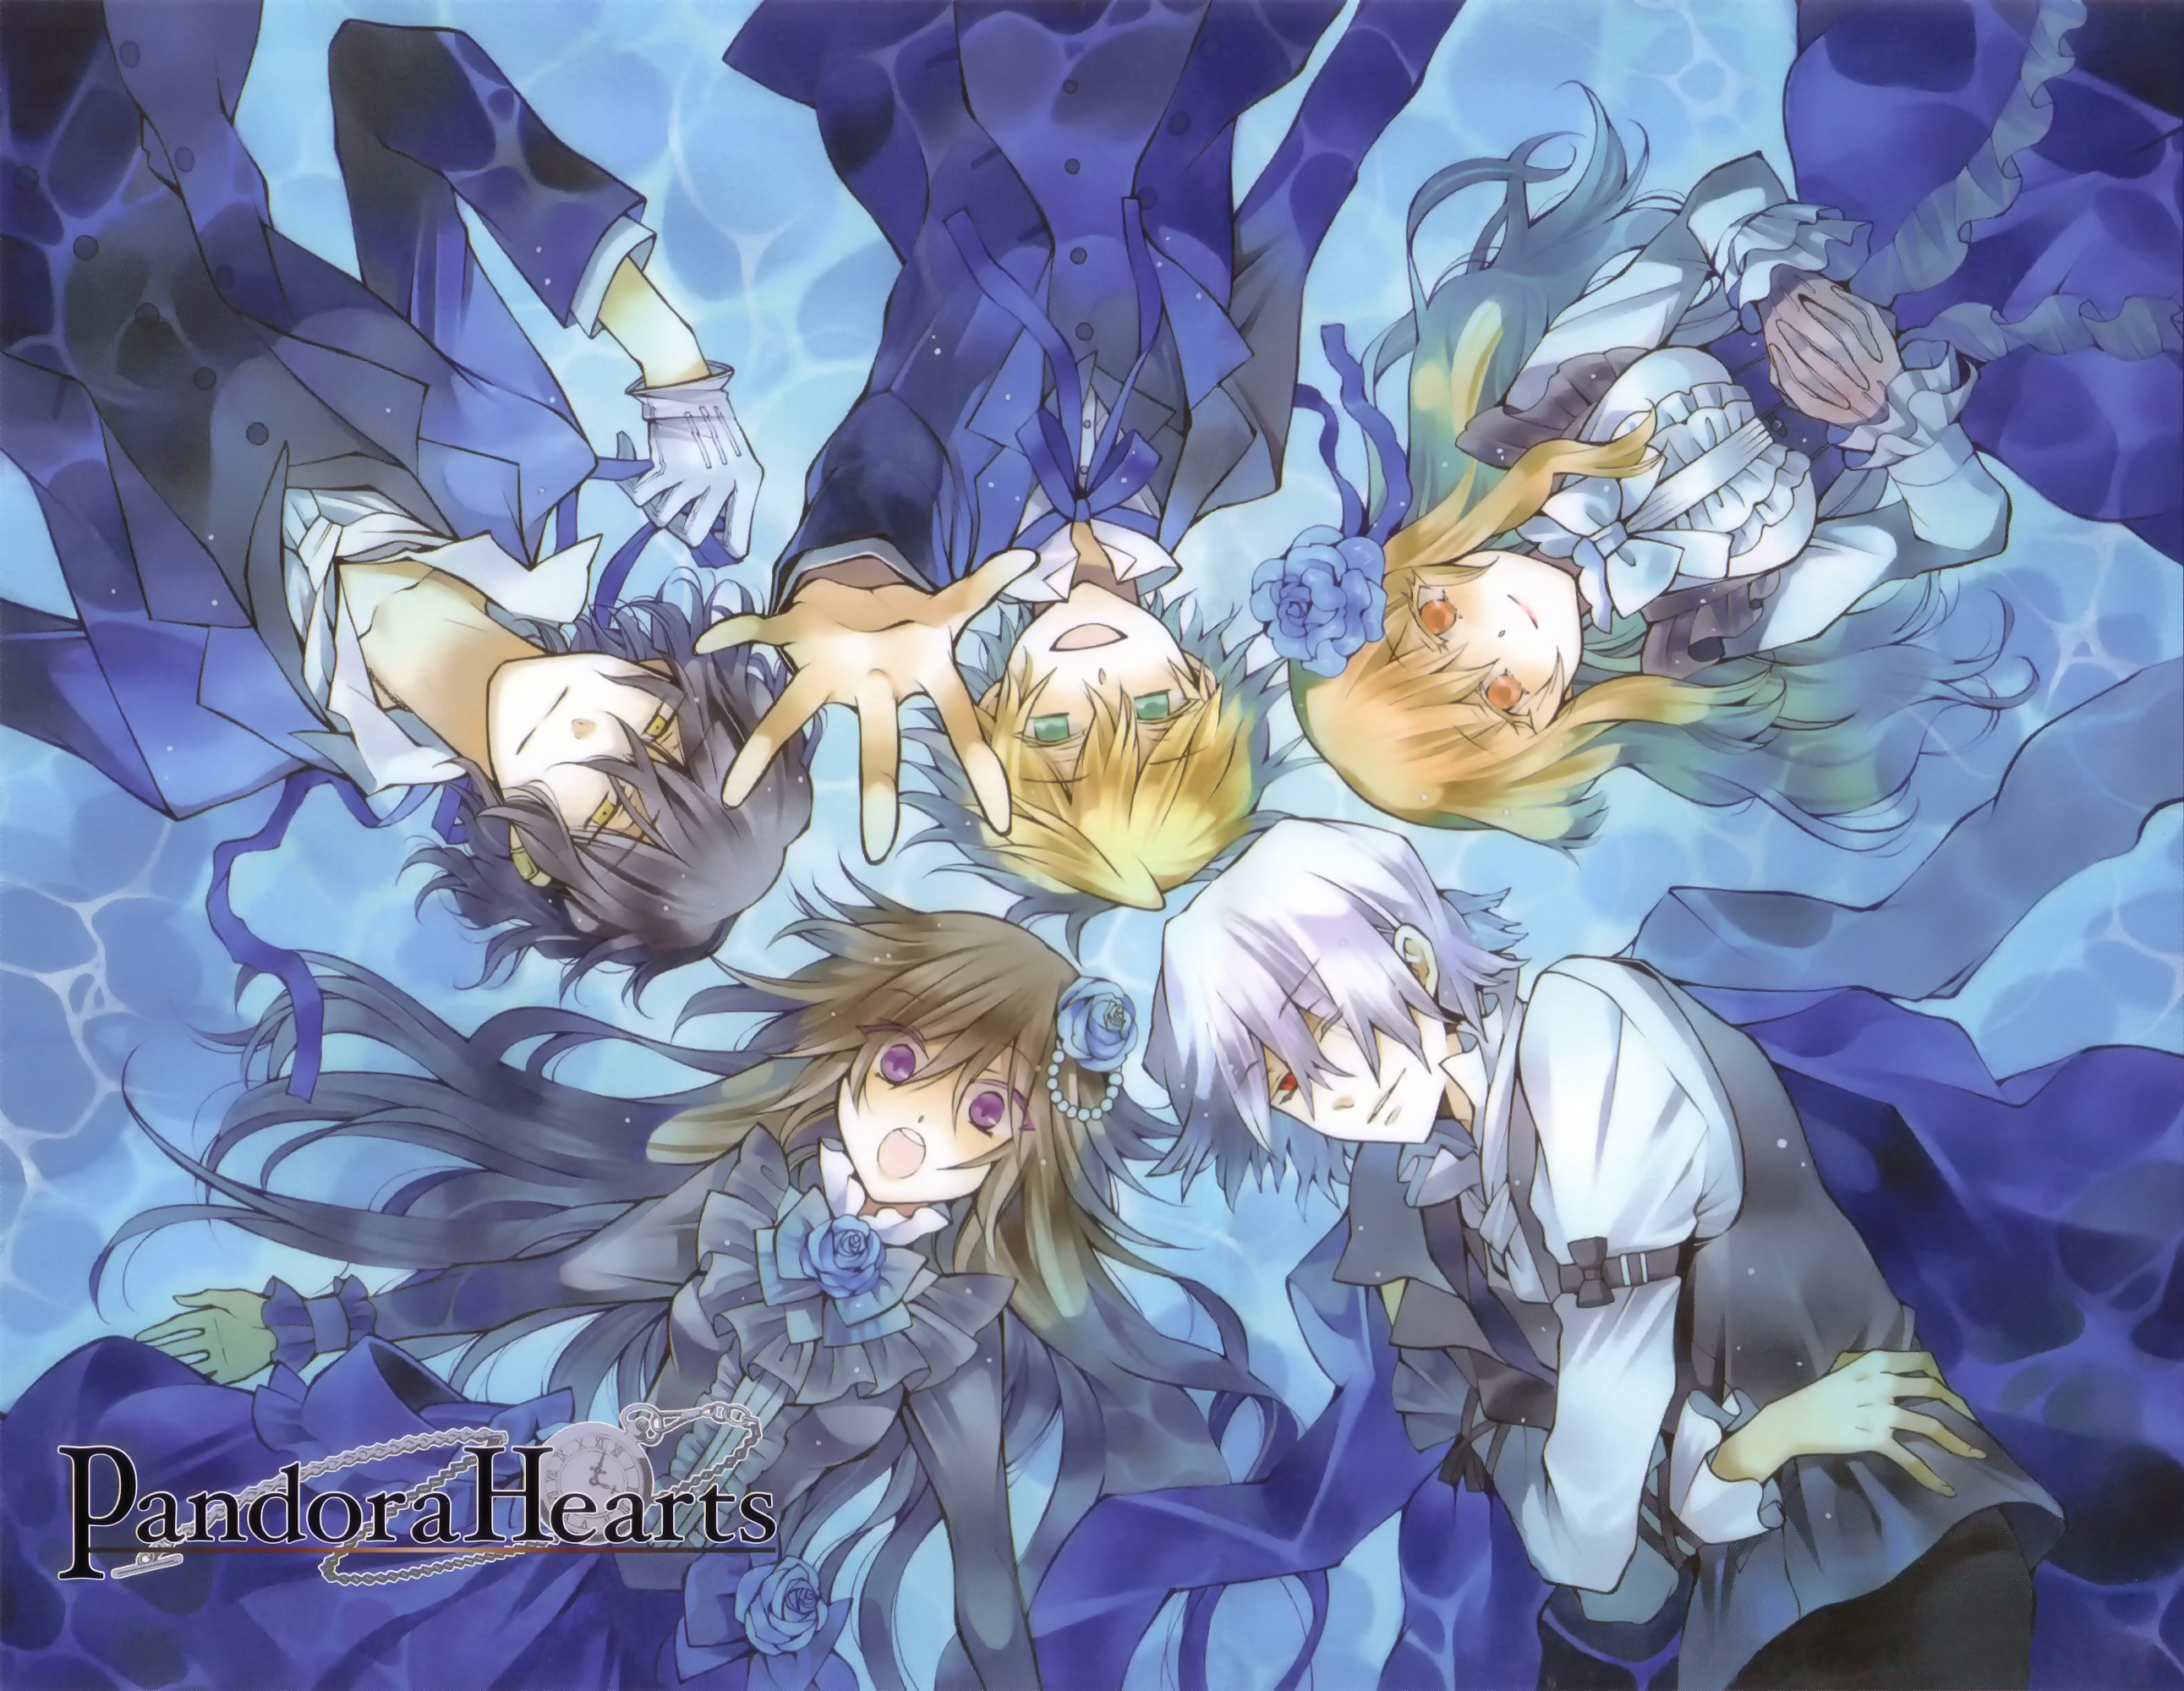 X And Y Anime Characters : Pandora hearts official art zerochan anime image board